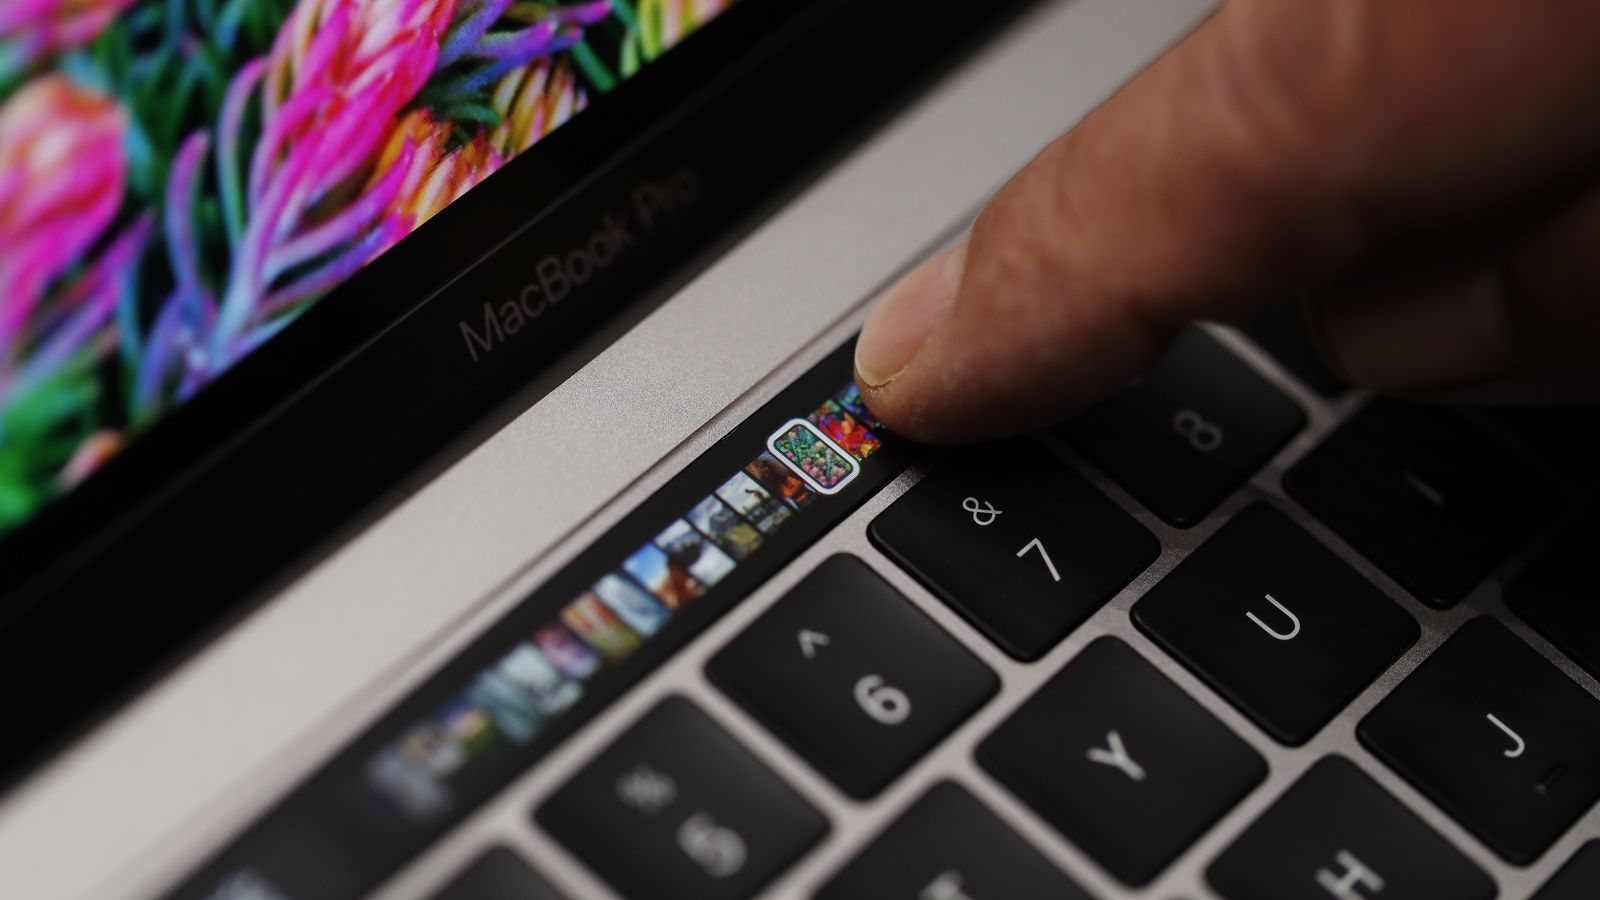 Apple convinced Consumer Reports to retest the MacBook Pro's battery after uncovering an 'obscure' bug